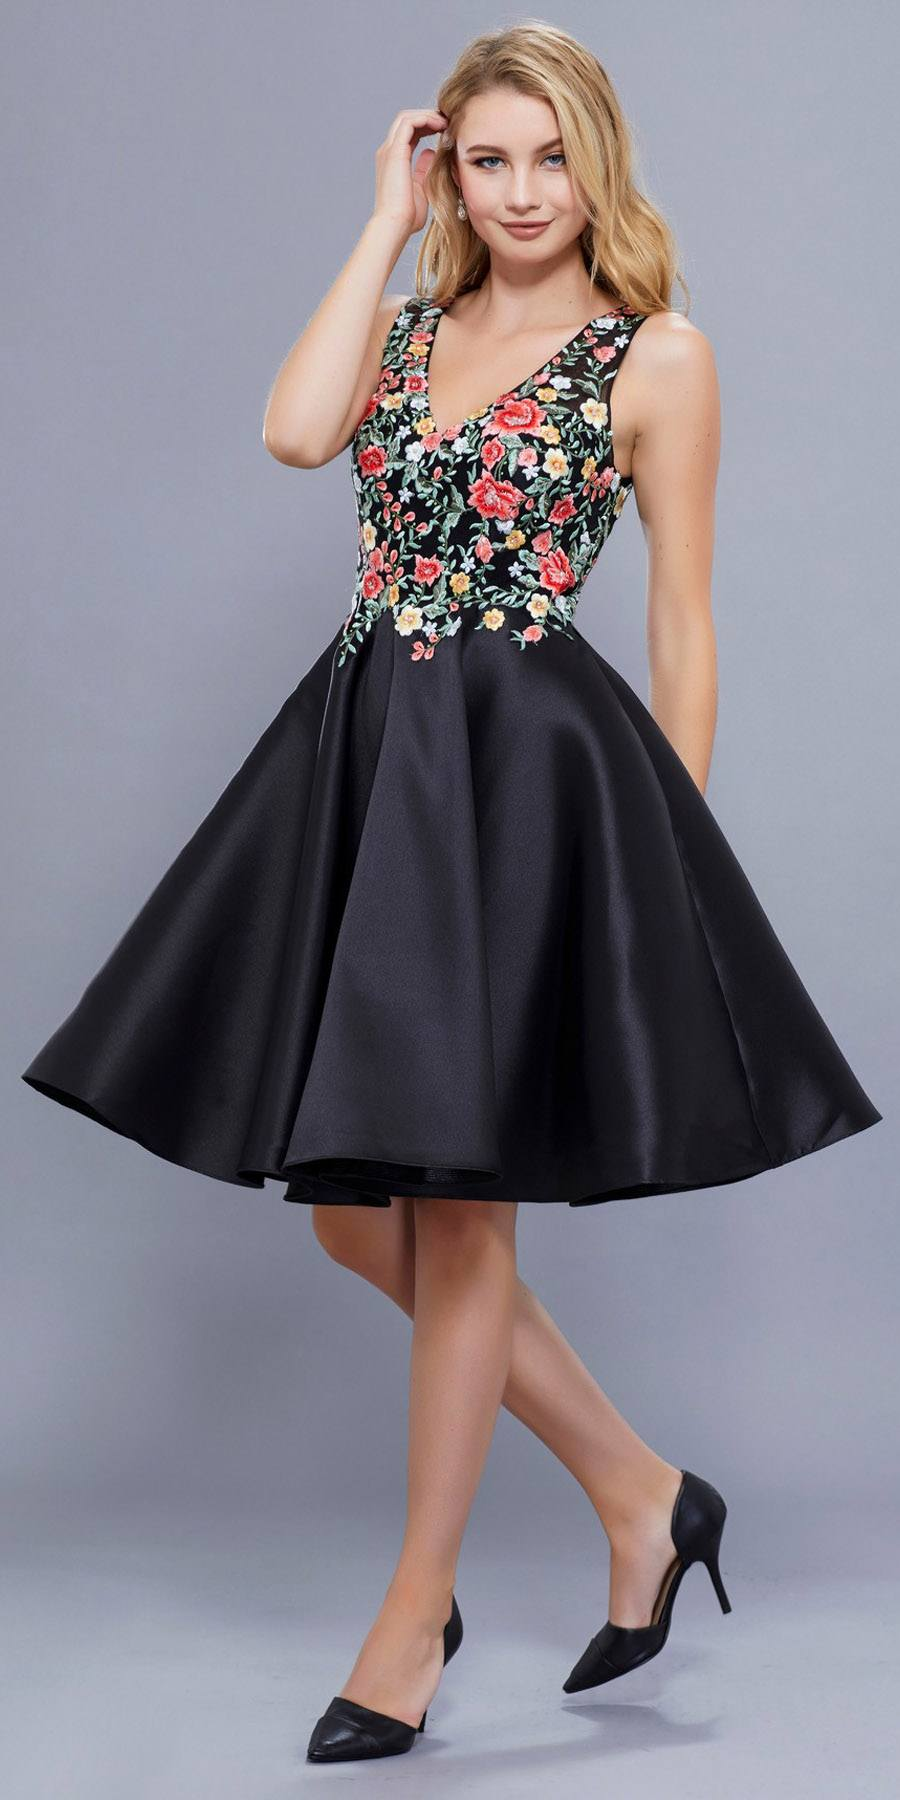 Knee Length Prom Dress A-Line Black-Floral Embroidered Bodice ...